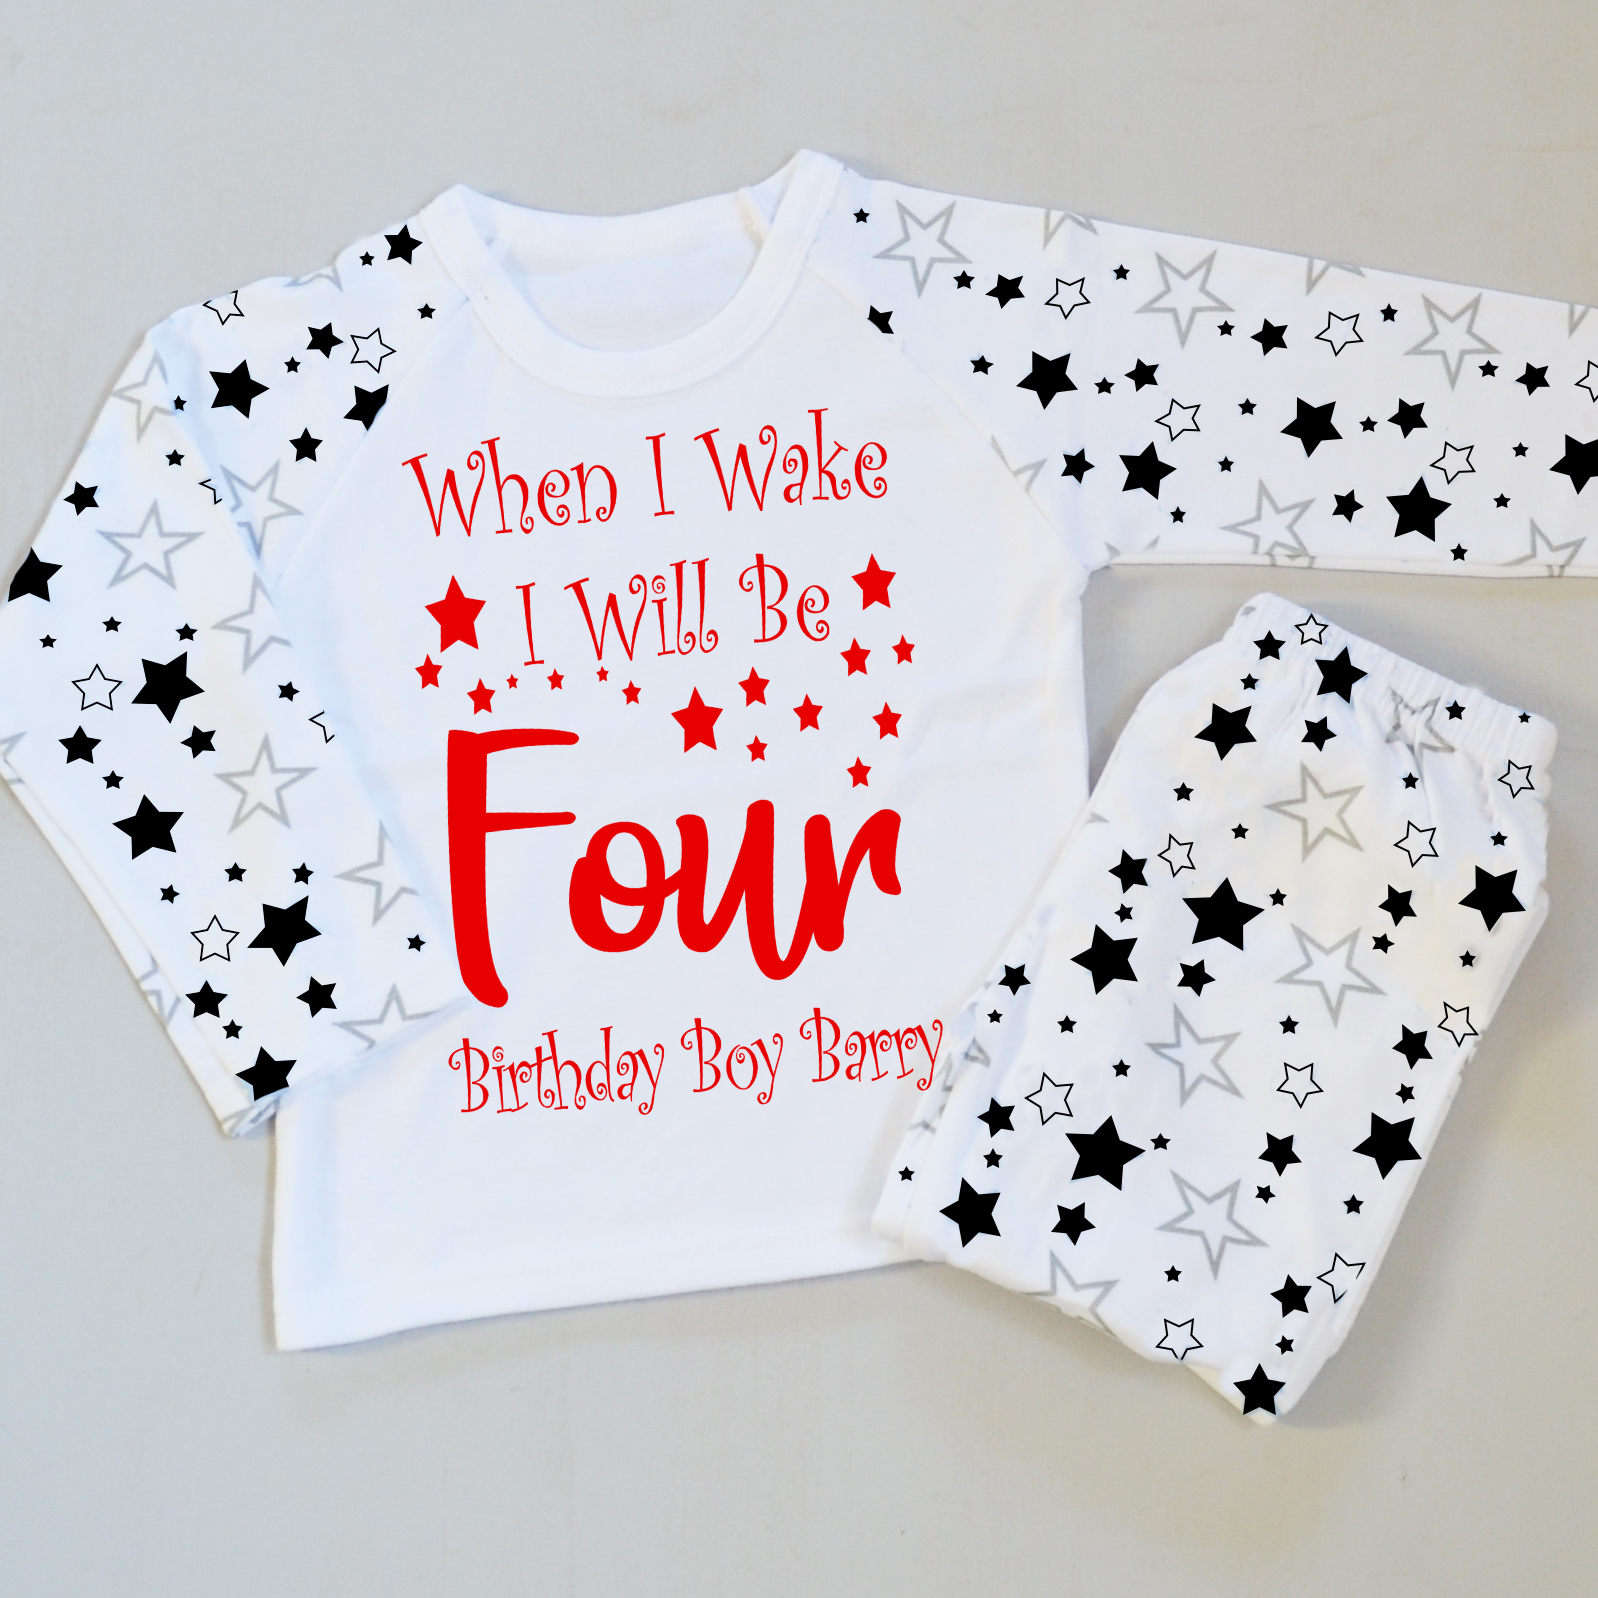 In The Morning I Will Be Birthday pyjamas PJ's  Ages 1,2,3  Personalised Soft